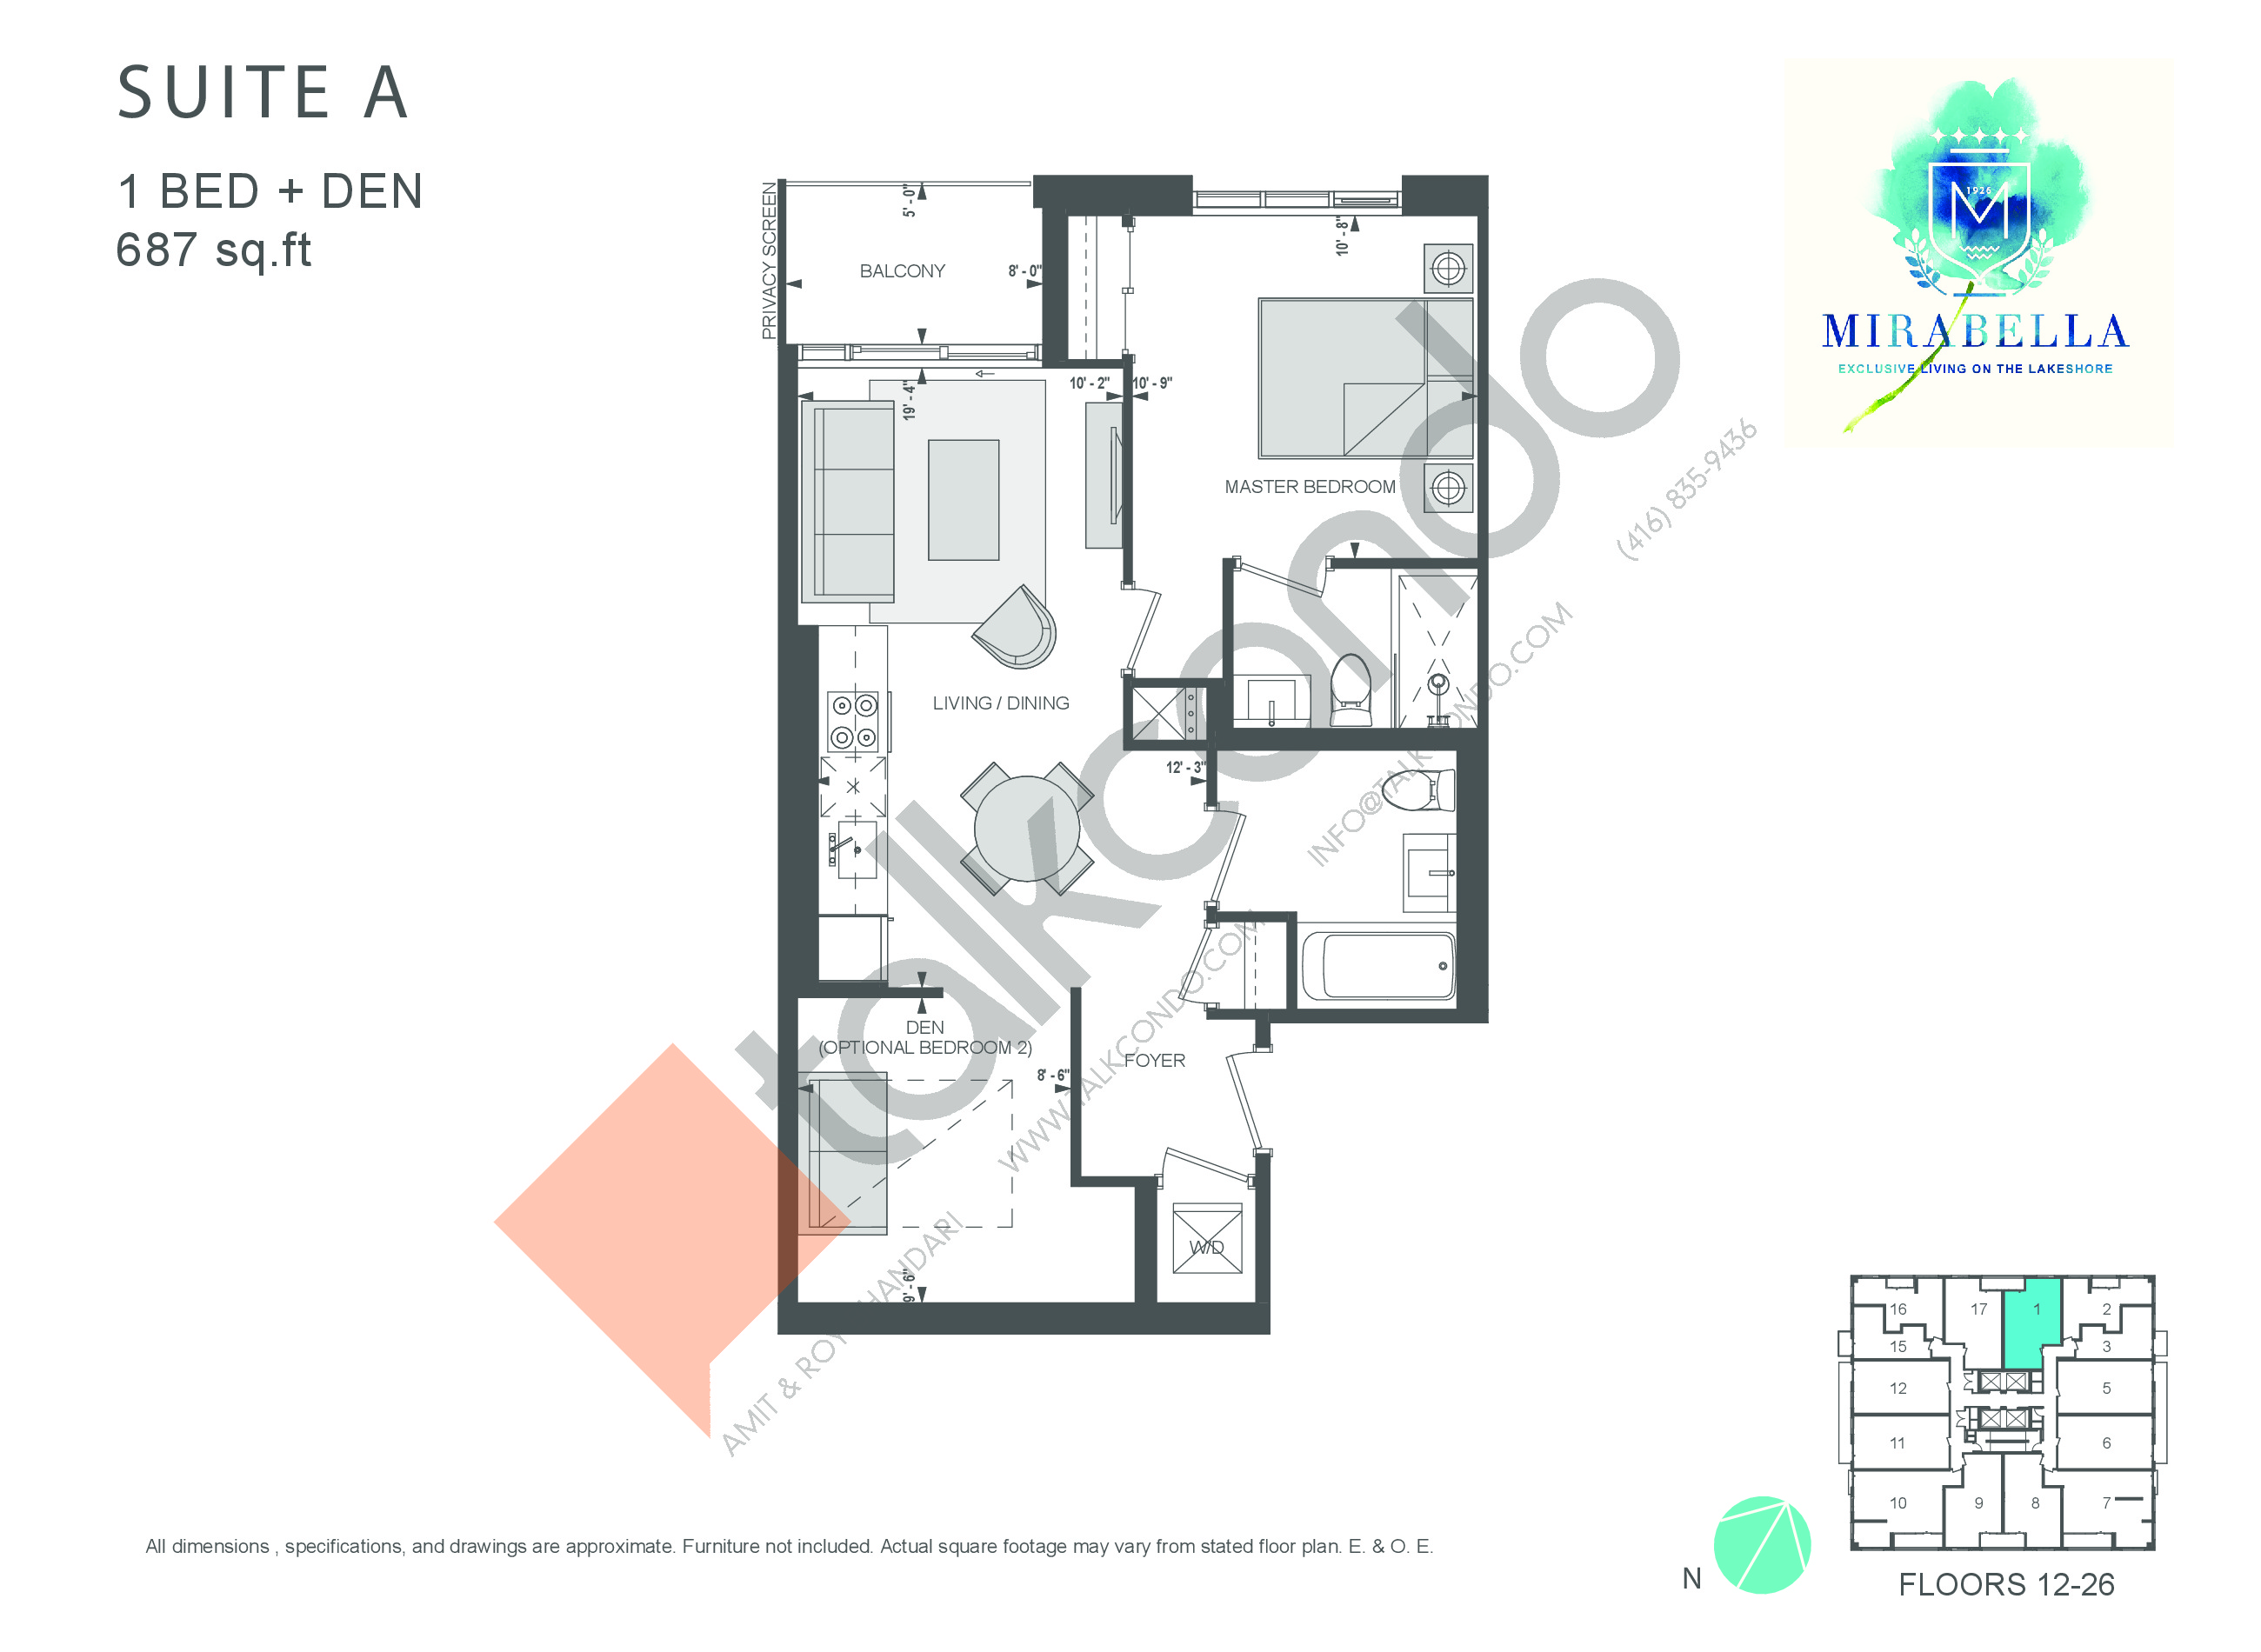 Suite A Floor Plan at Mirabella Luxury Condos East Tower - 687 sq.ft